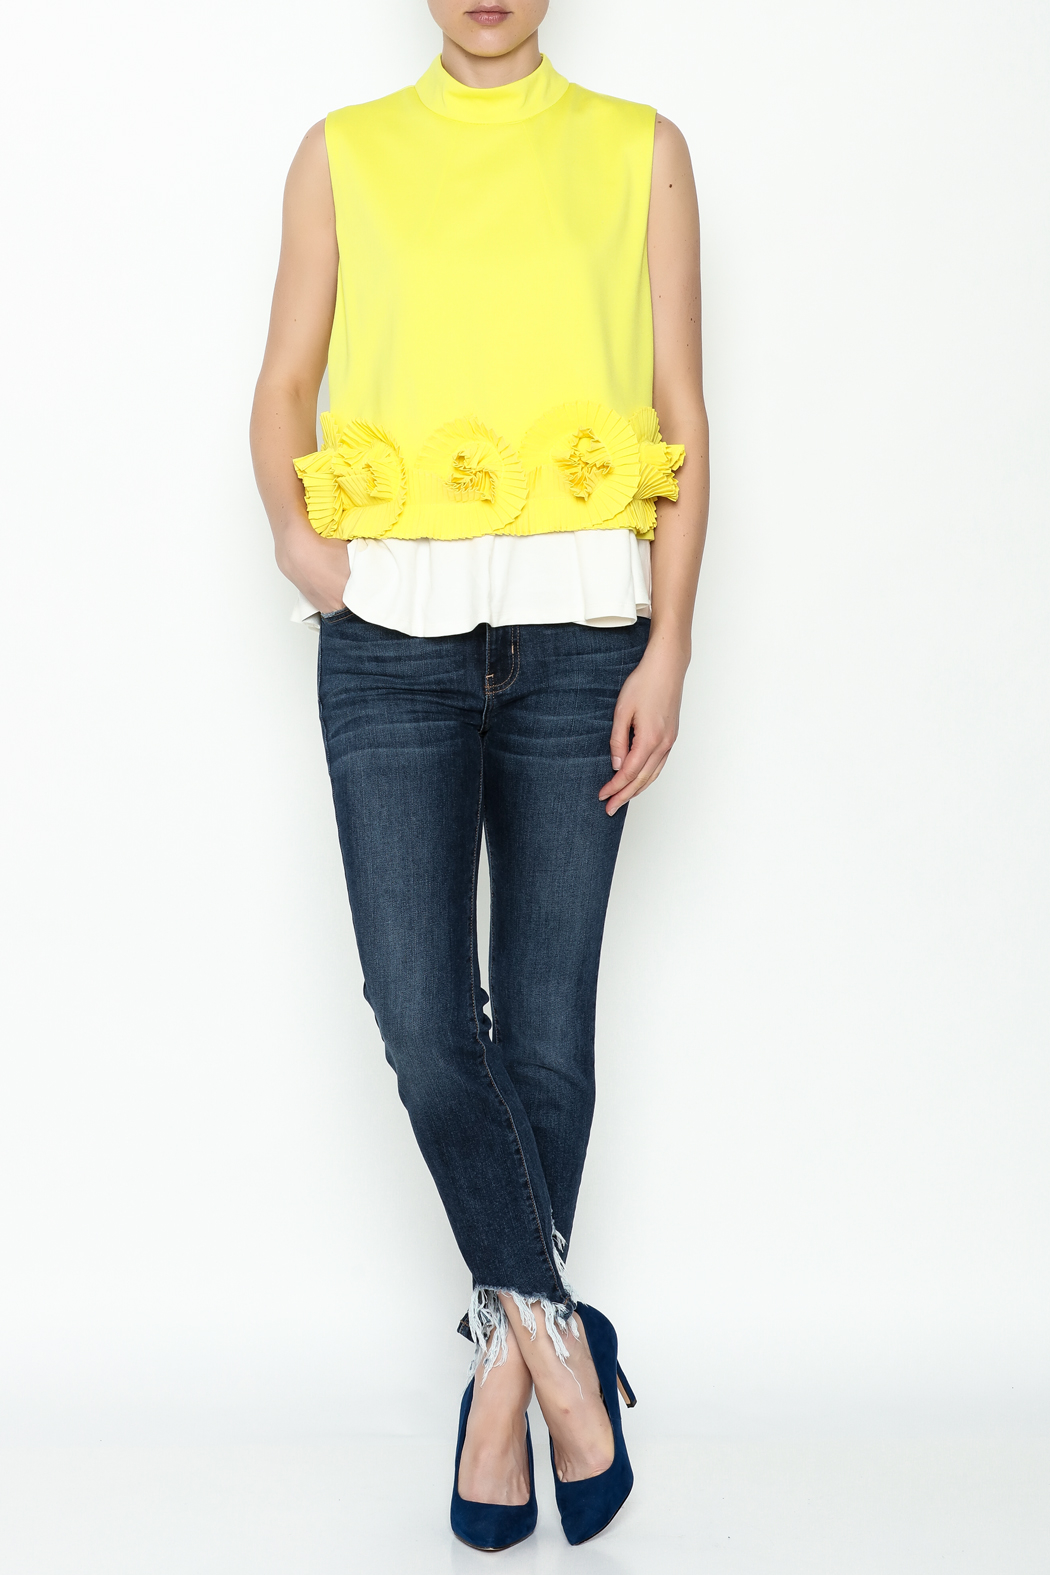 cq by cq Underlay Blouse - Side Cropped Image